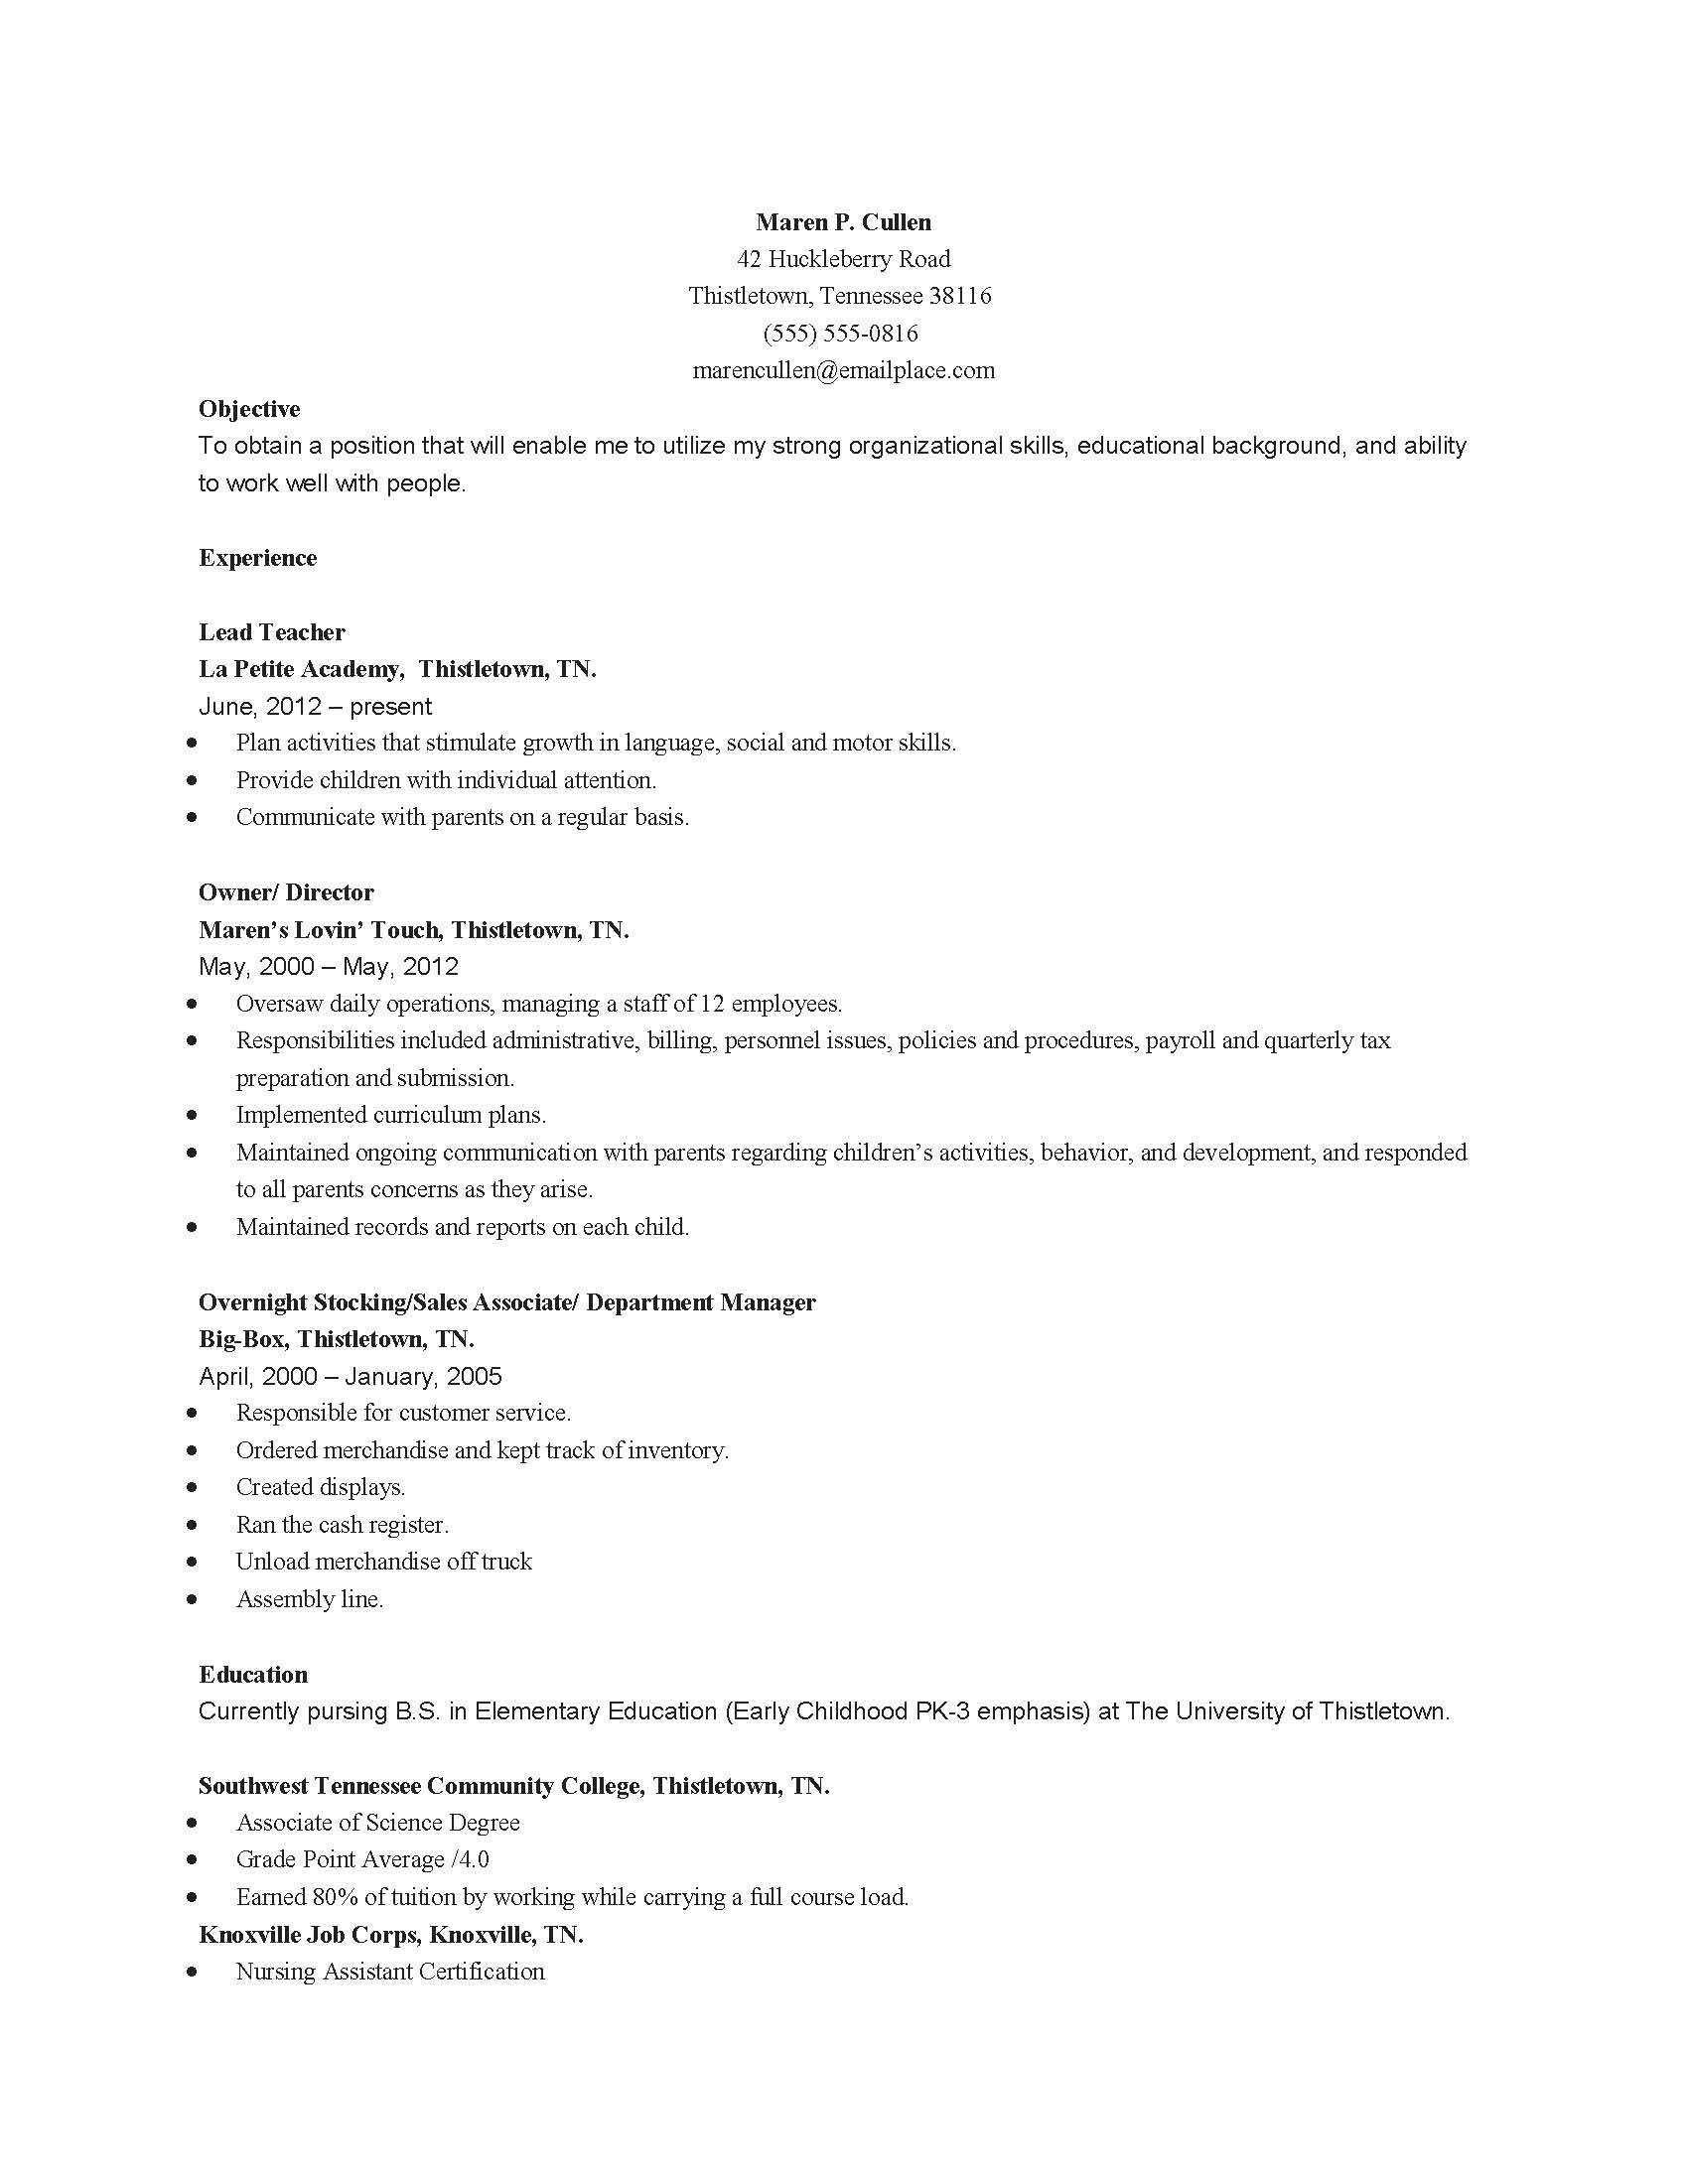 childhood education child care resume sample best examples for educator nmdnconference Resume Sample Resume For Child Care Educator